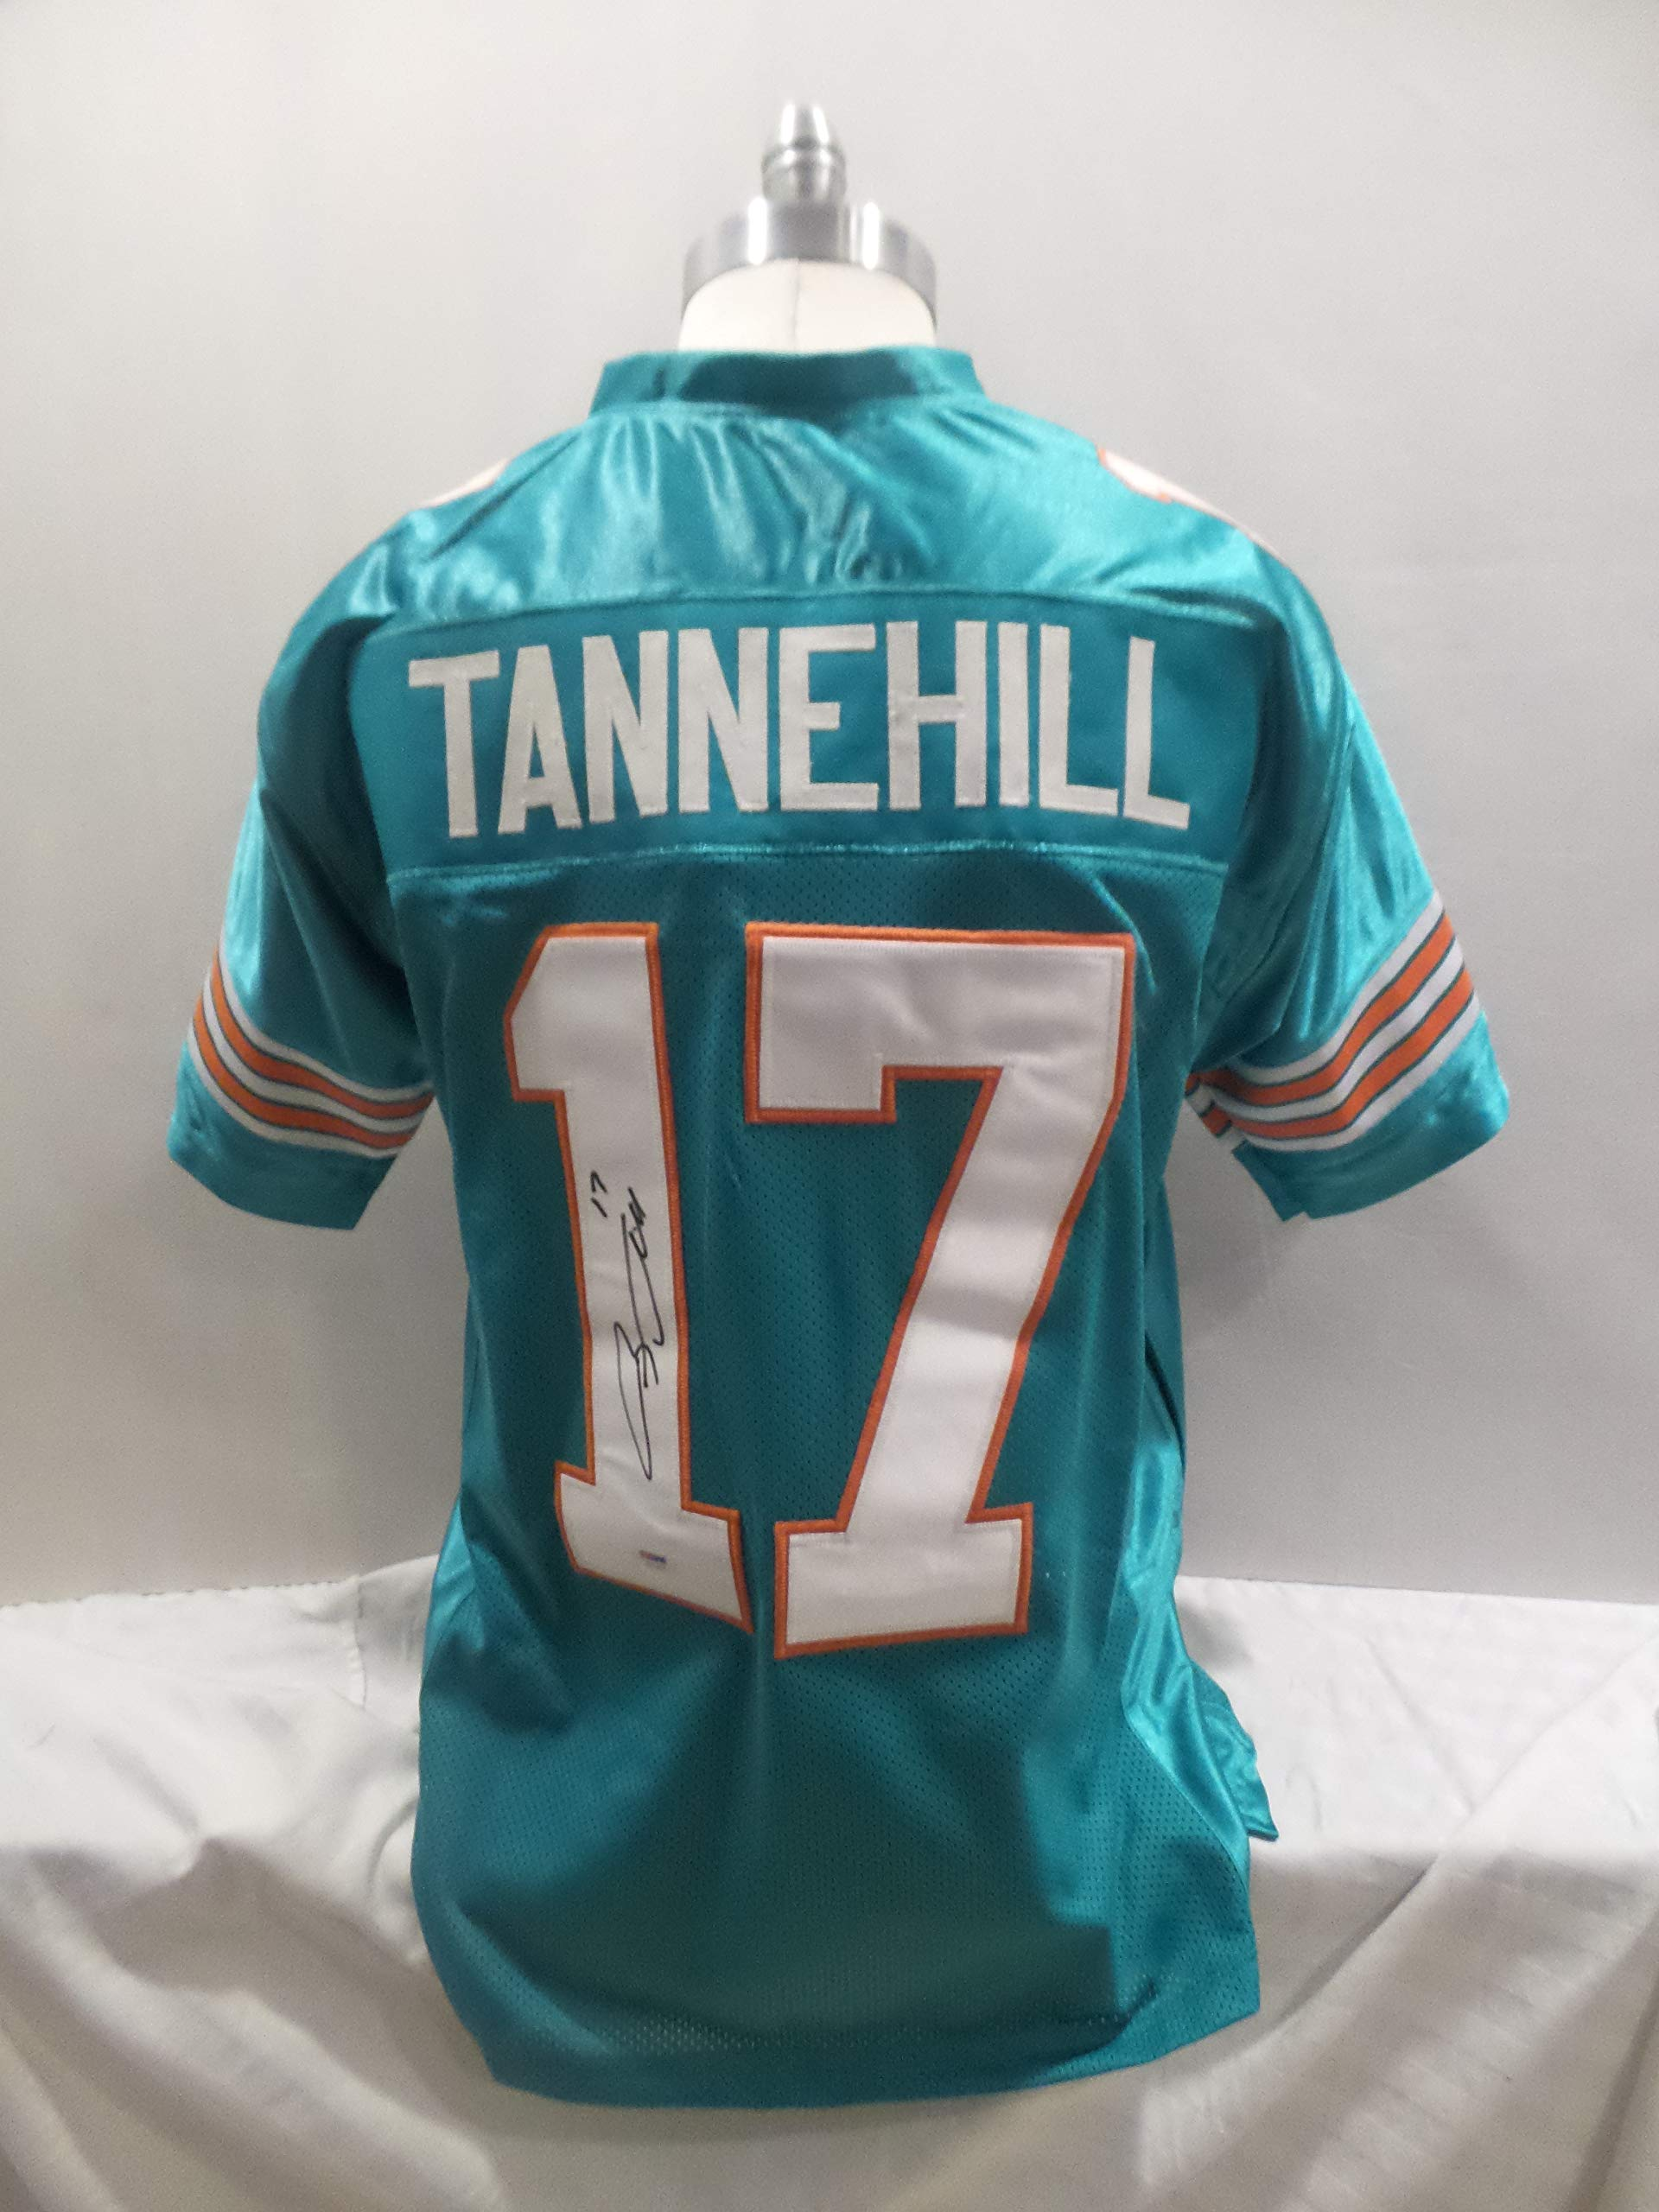 Ryan Tannehill Signed Miami Dolphins Teal Autographed Jersey PSA/DNA